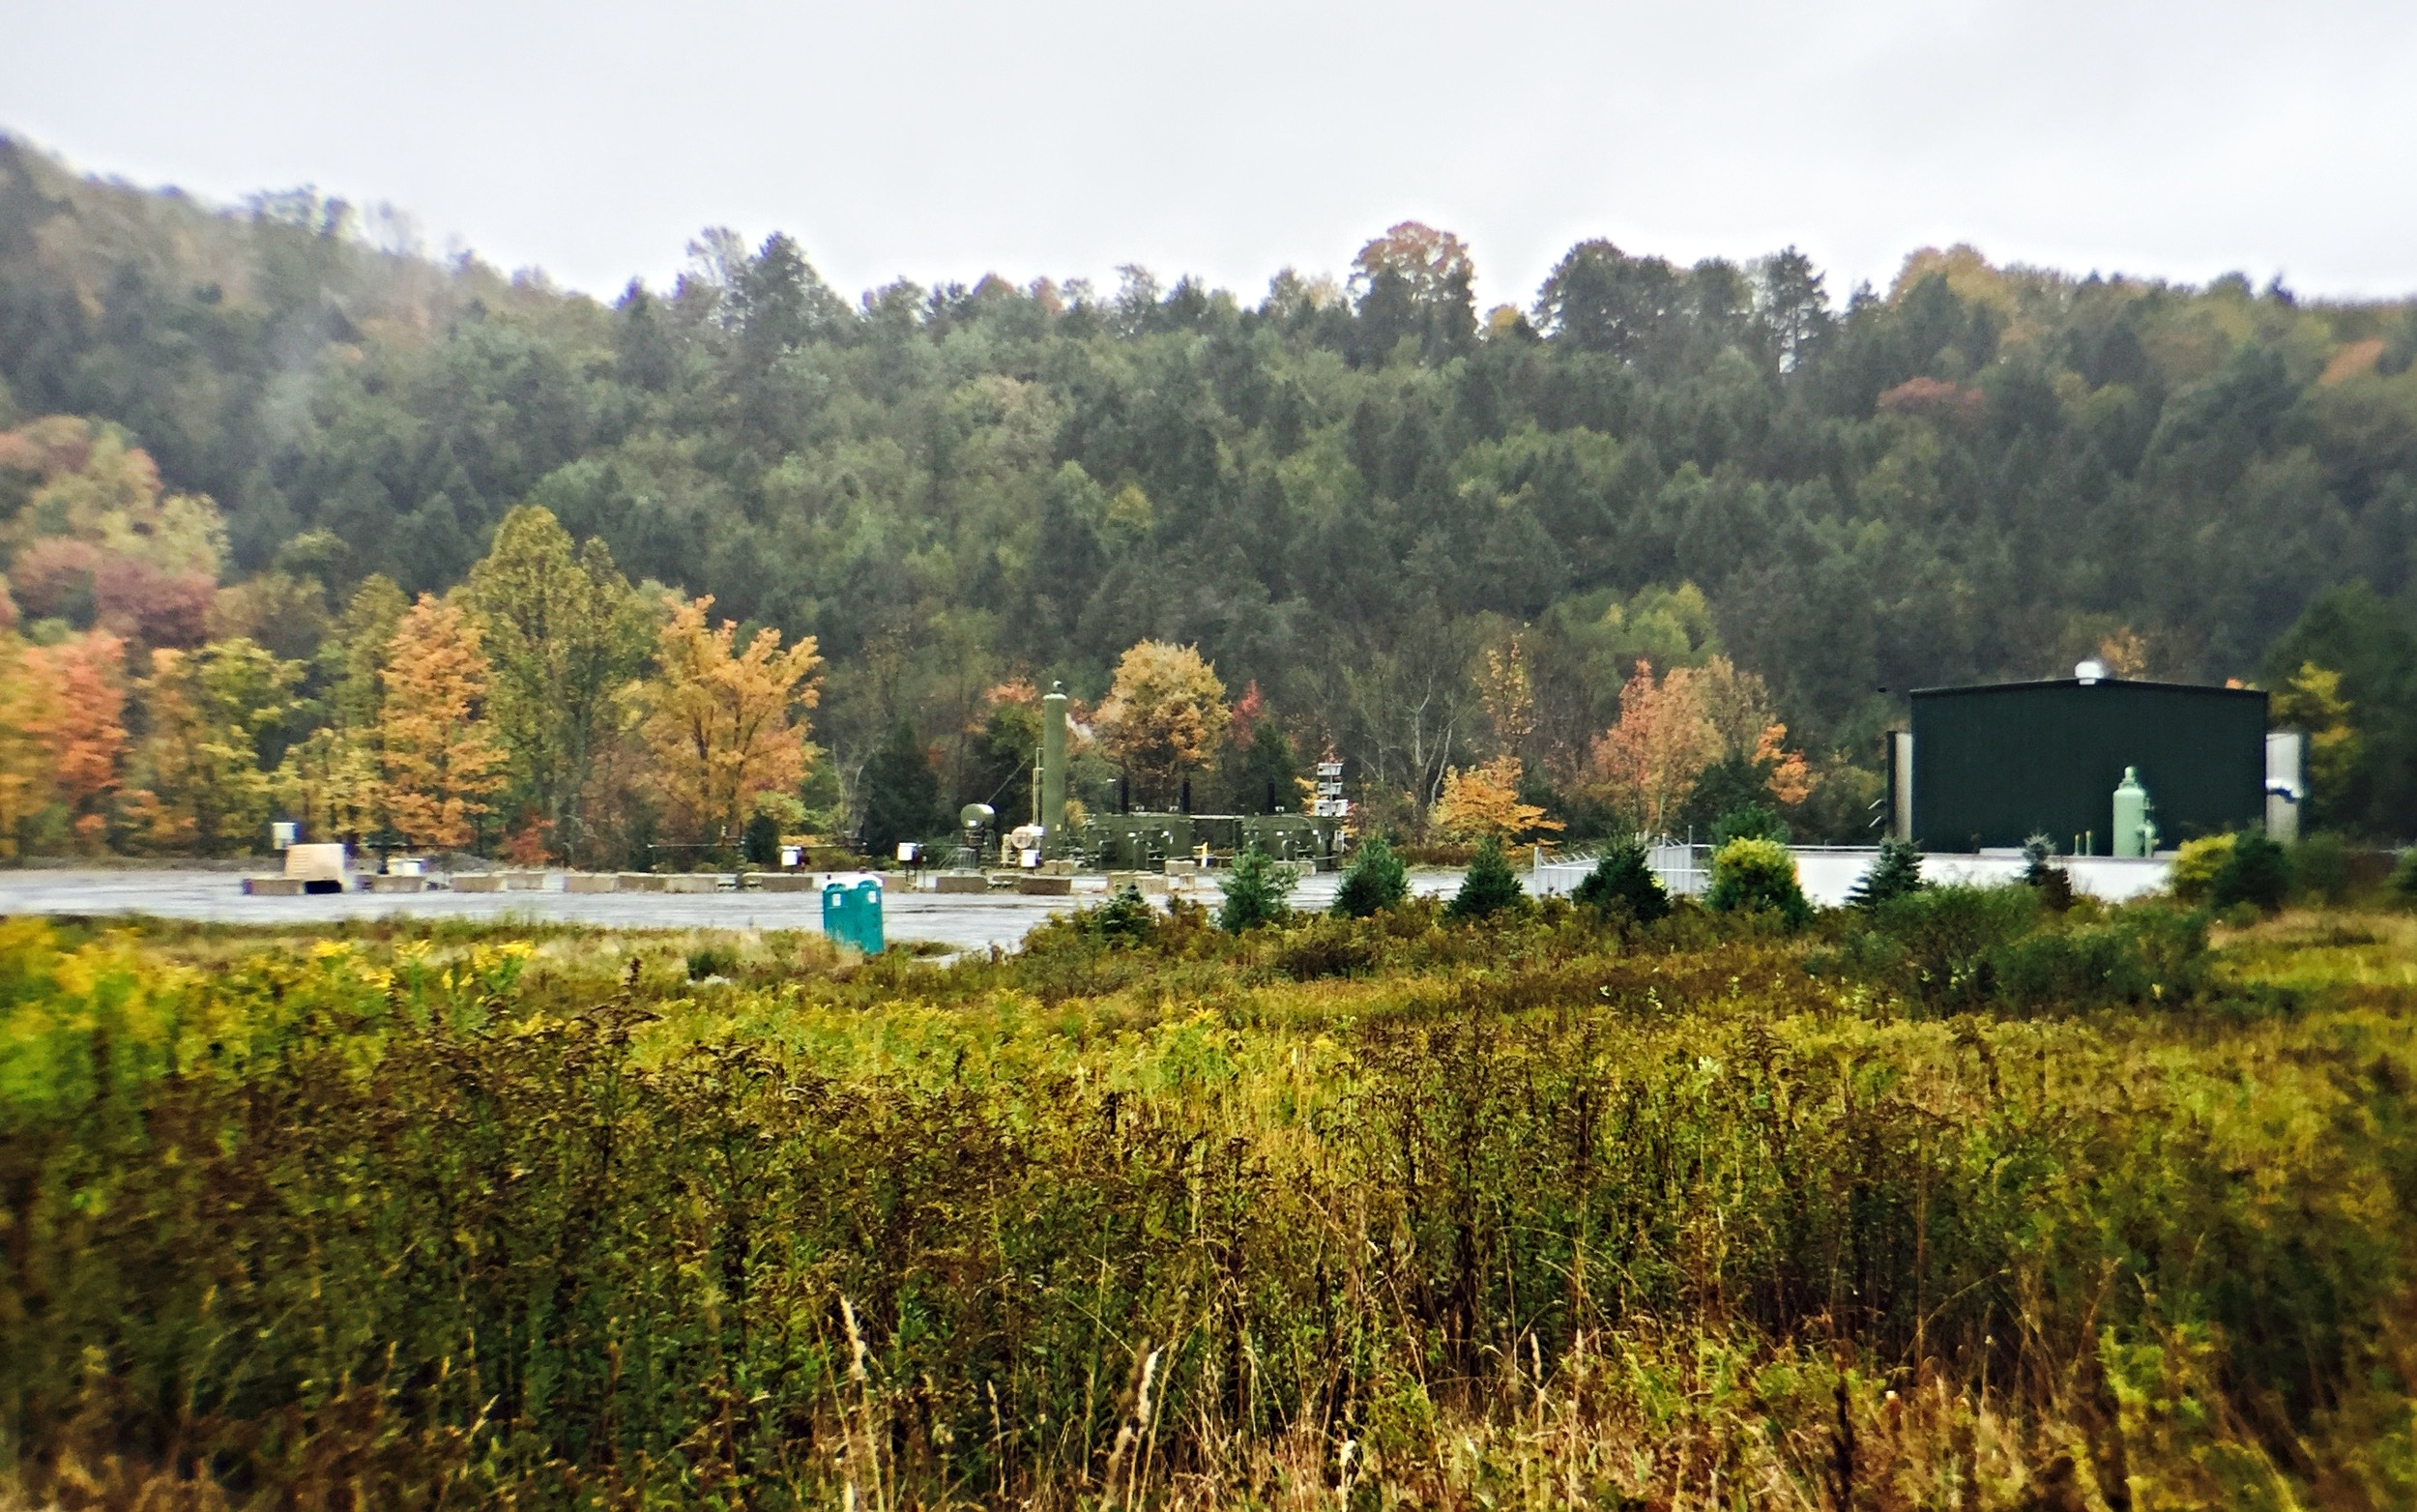 A fracking pad near Laurel Lake in northern PA.